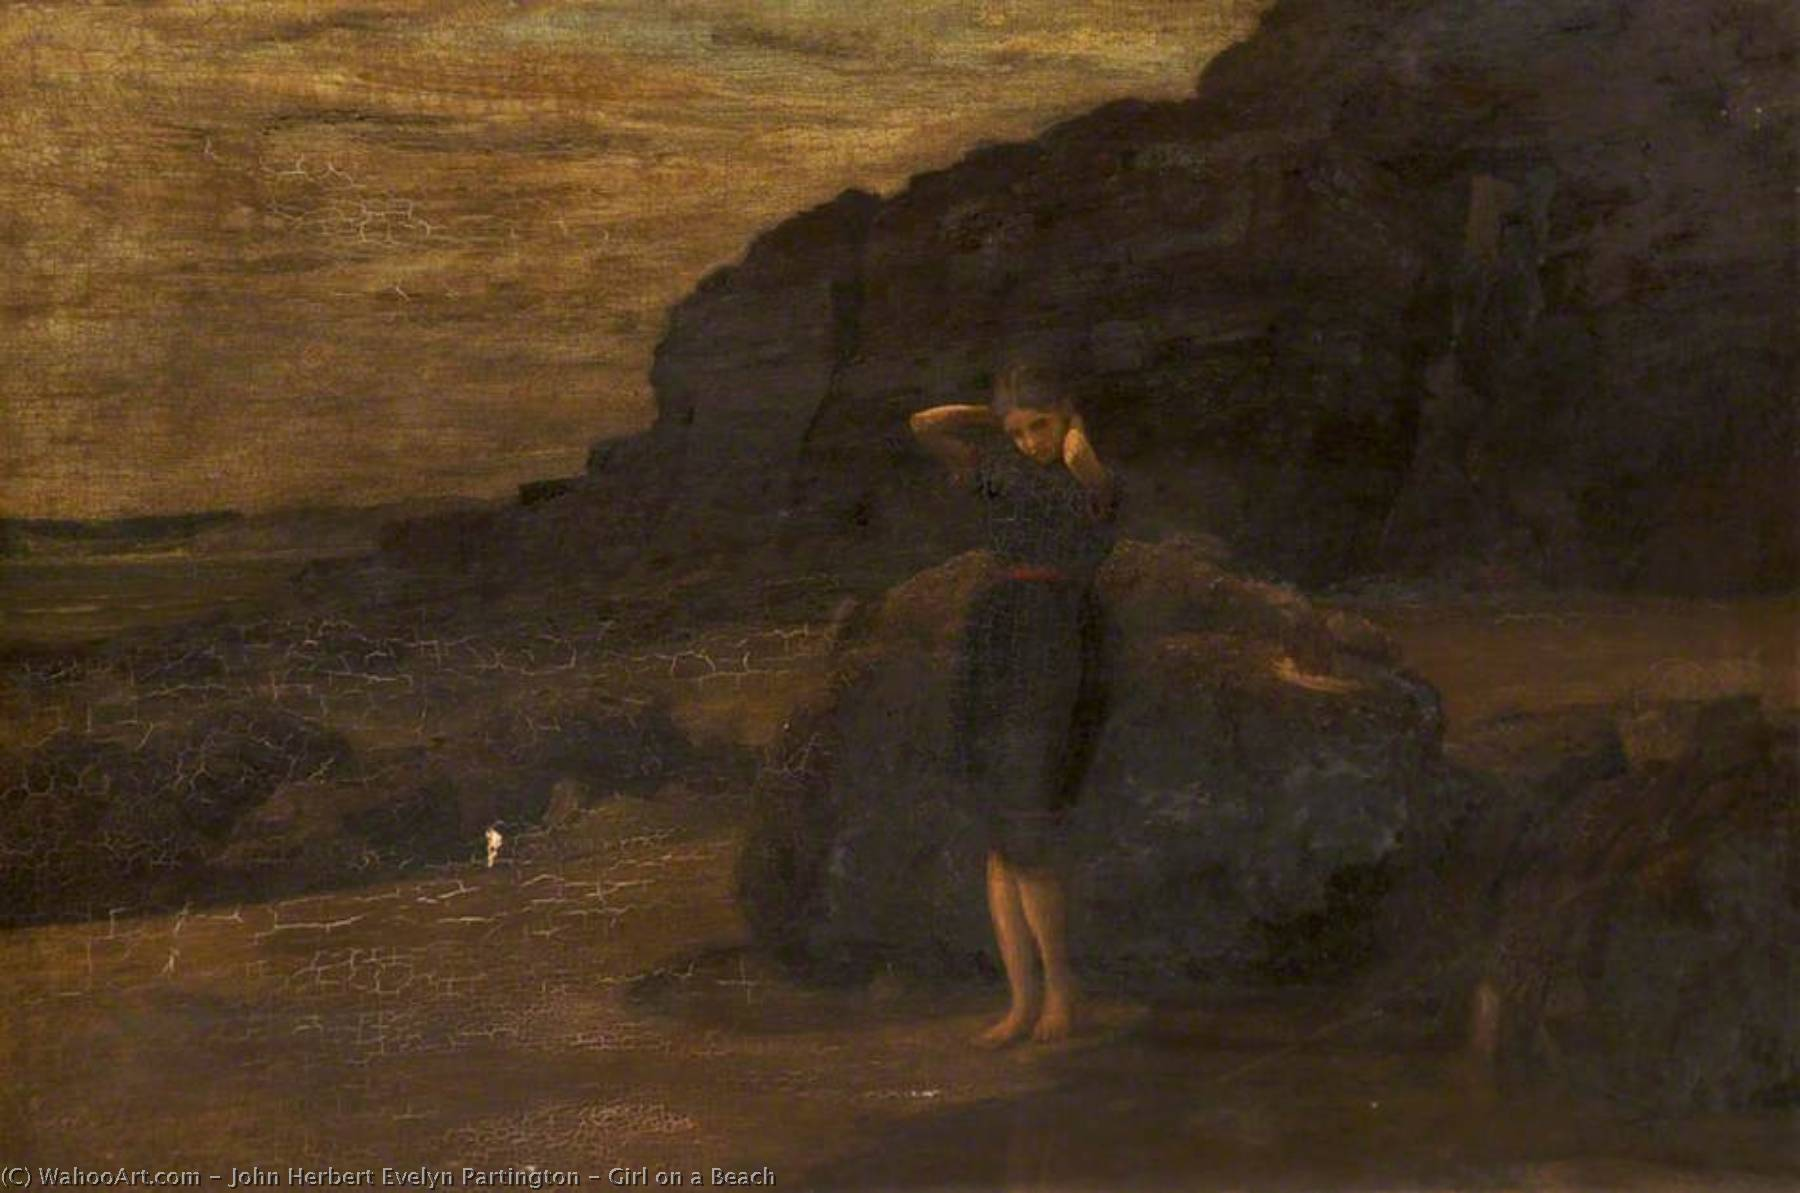 Girl on a Beach, 1880 by John Herbert Evelyn Partington | WahooArt.com